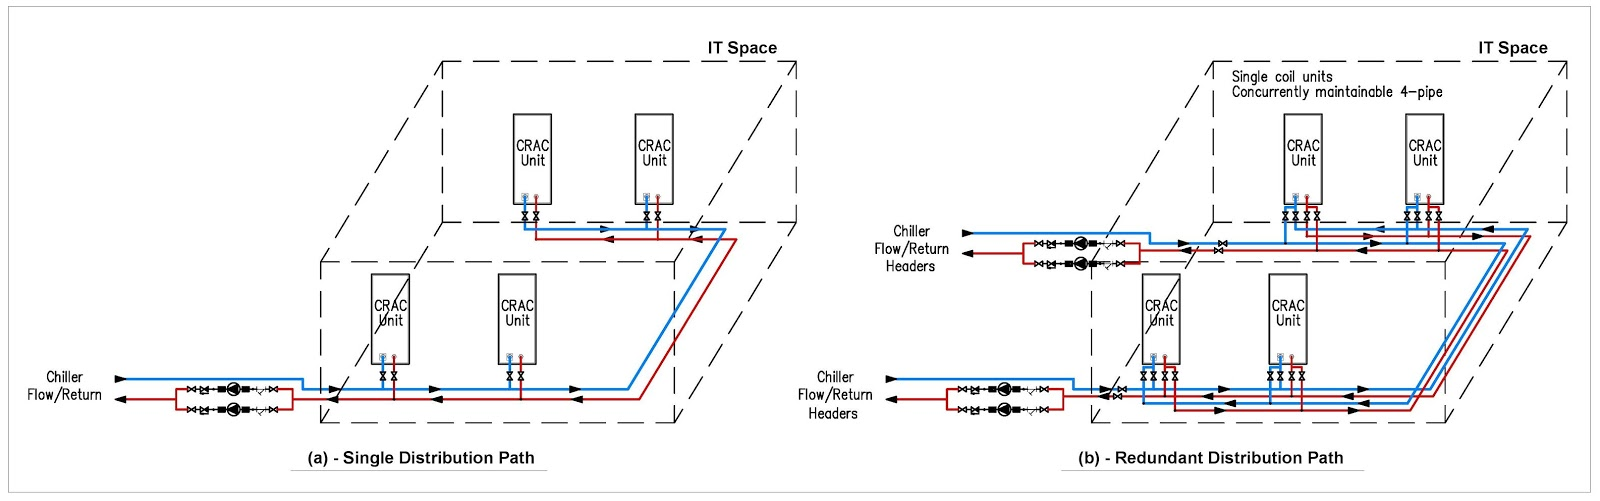 Tier 3 Data Center Cooling System Design My Engineering